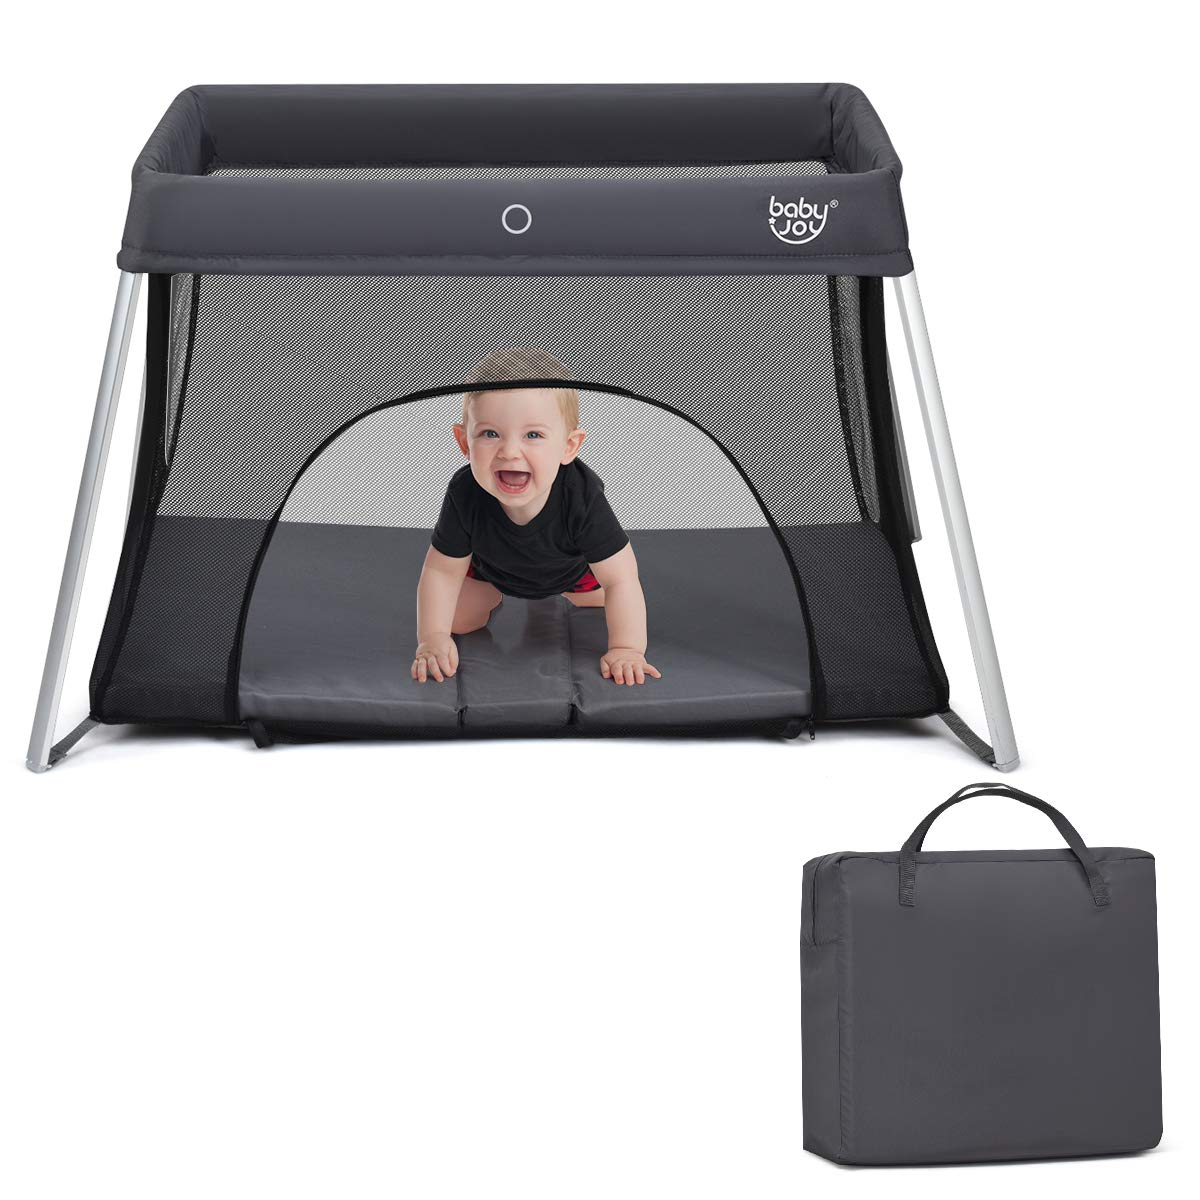 BABY JOY Baby Foldable Travel Crib, 2 in 1 Portable Playpen with Soft Washable Mattress, Side Zipper Design, Lightweight Installation-Free Home Playard with Carry Bag, for Infants & Toddlers (Grey)